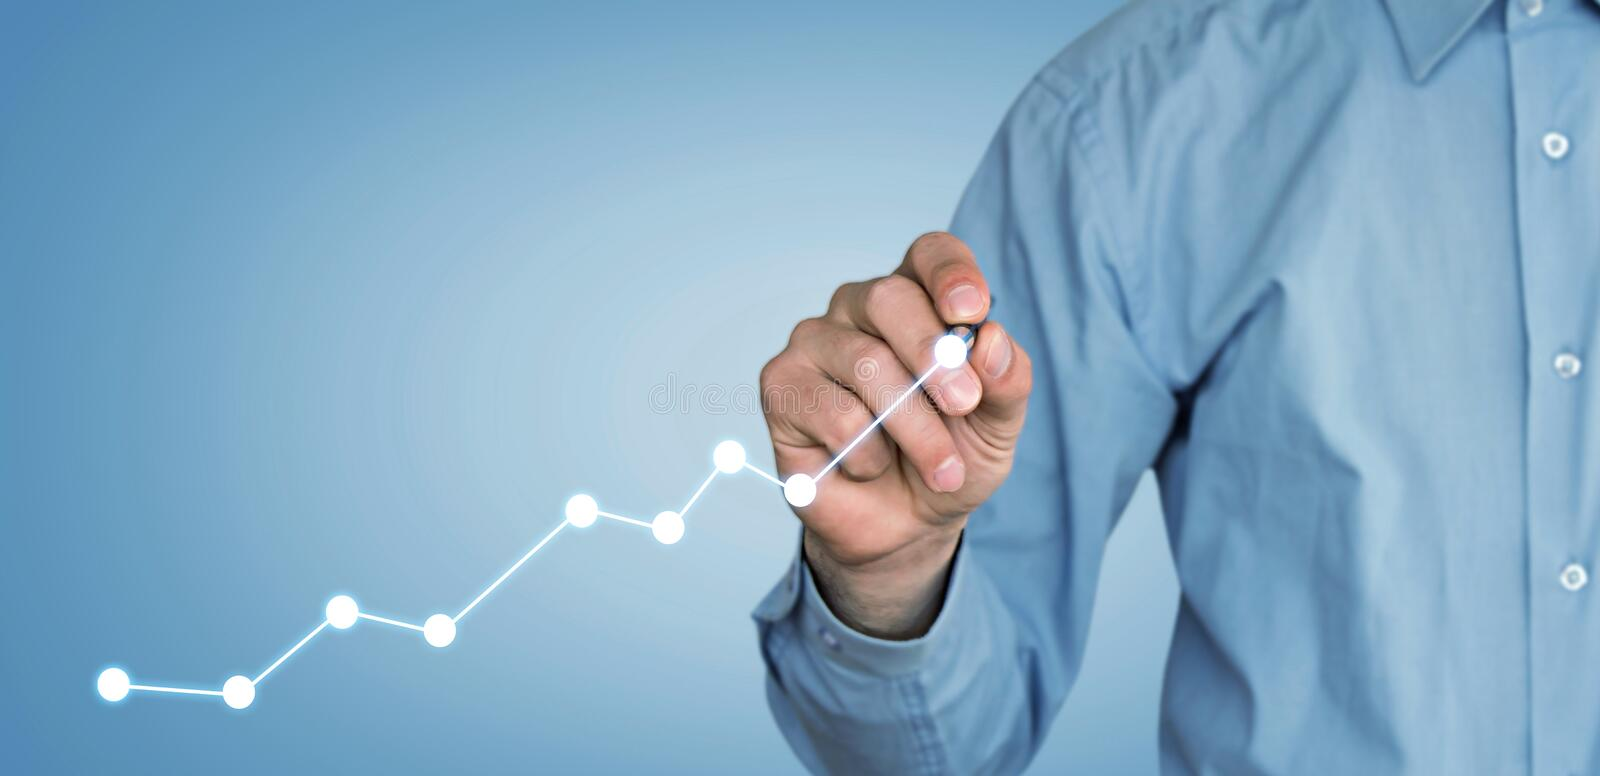 Man with financial chart. Growth concept stock photo